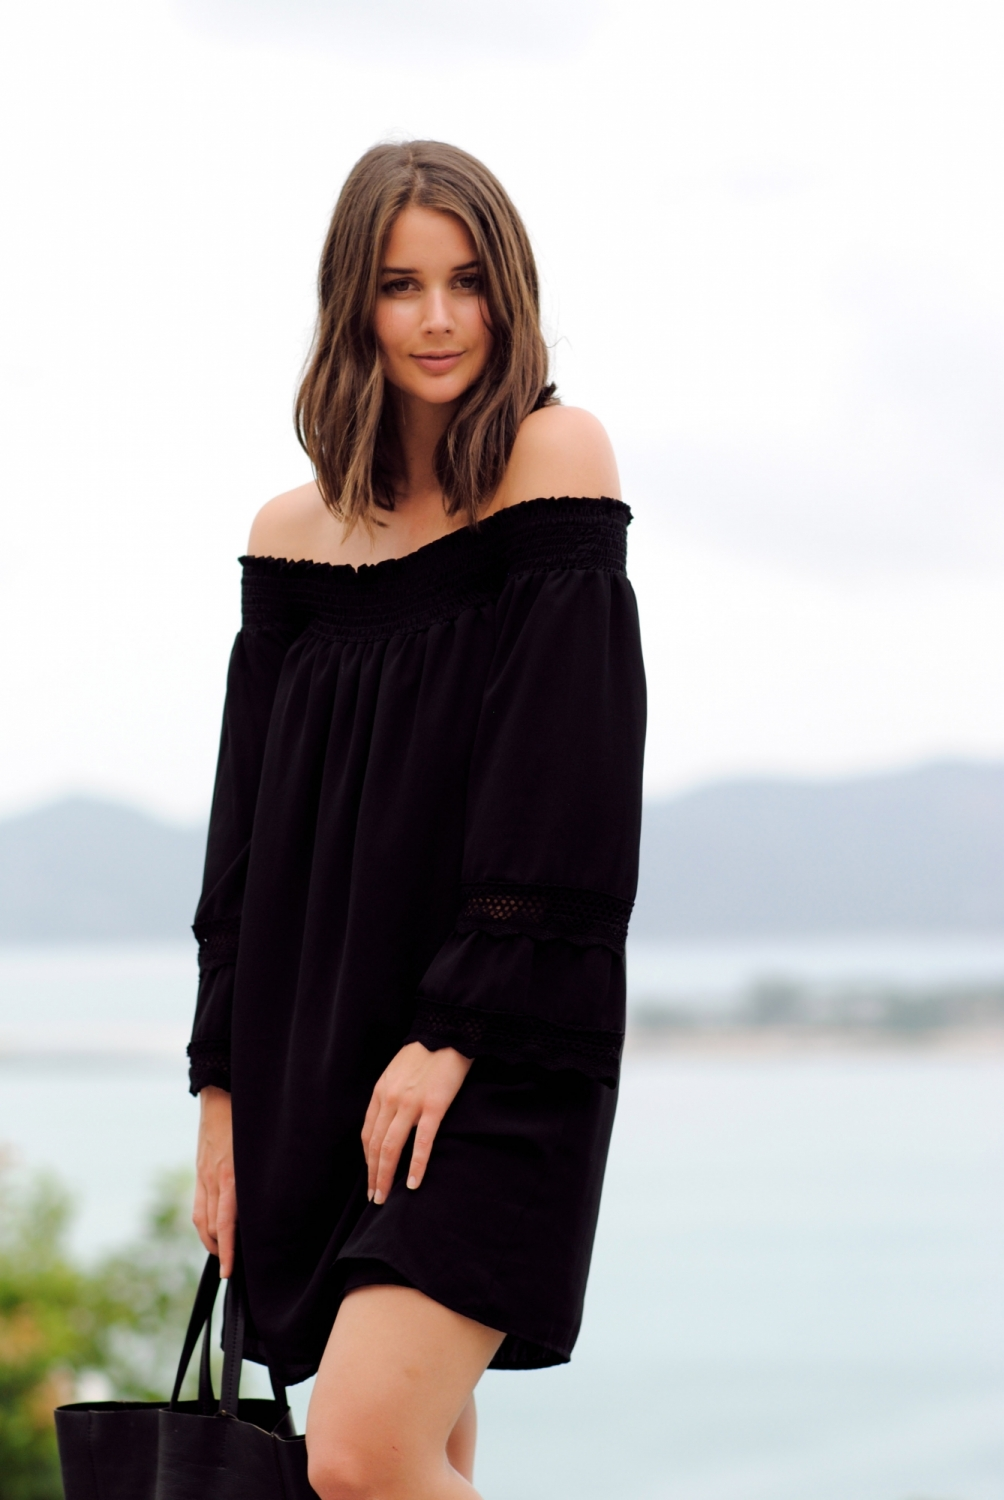 harper and harley_off the shoulder black dress_travel_thailand_koh samui_03